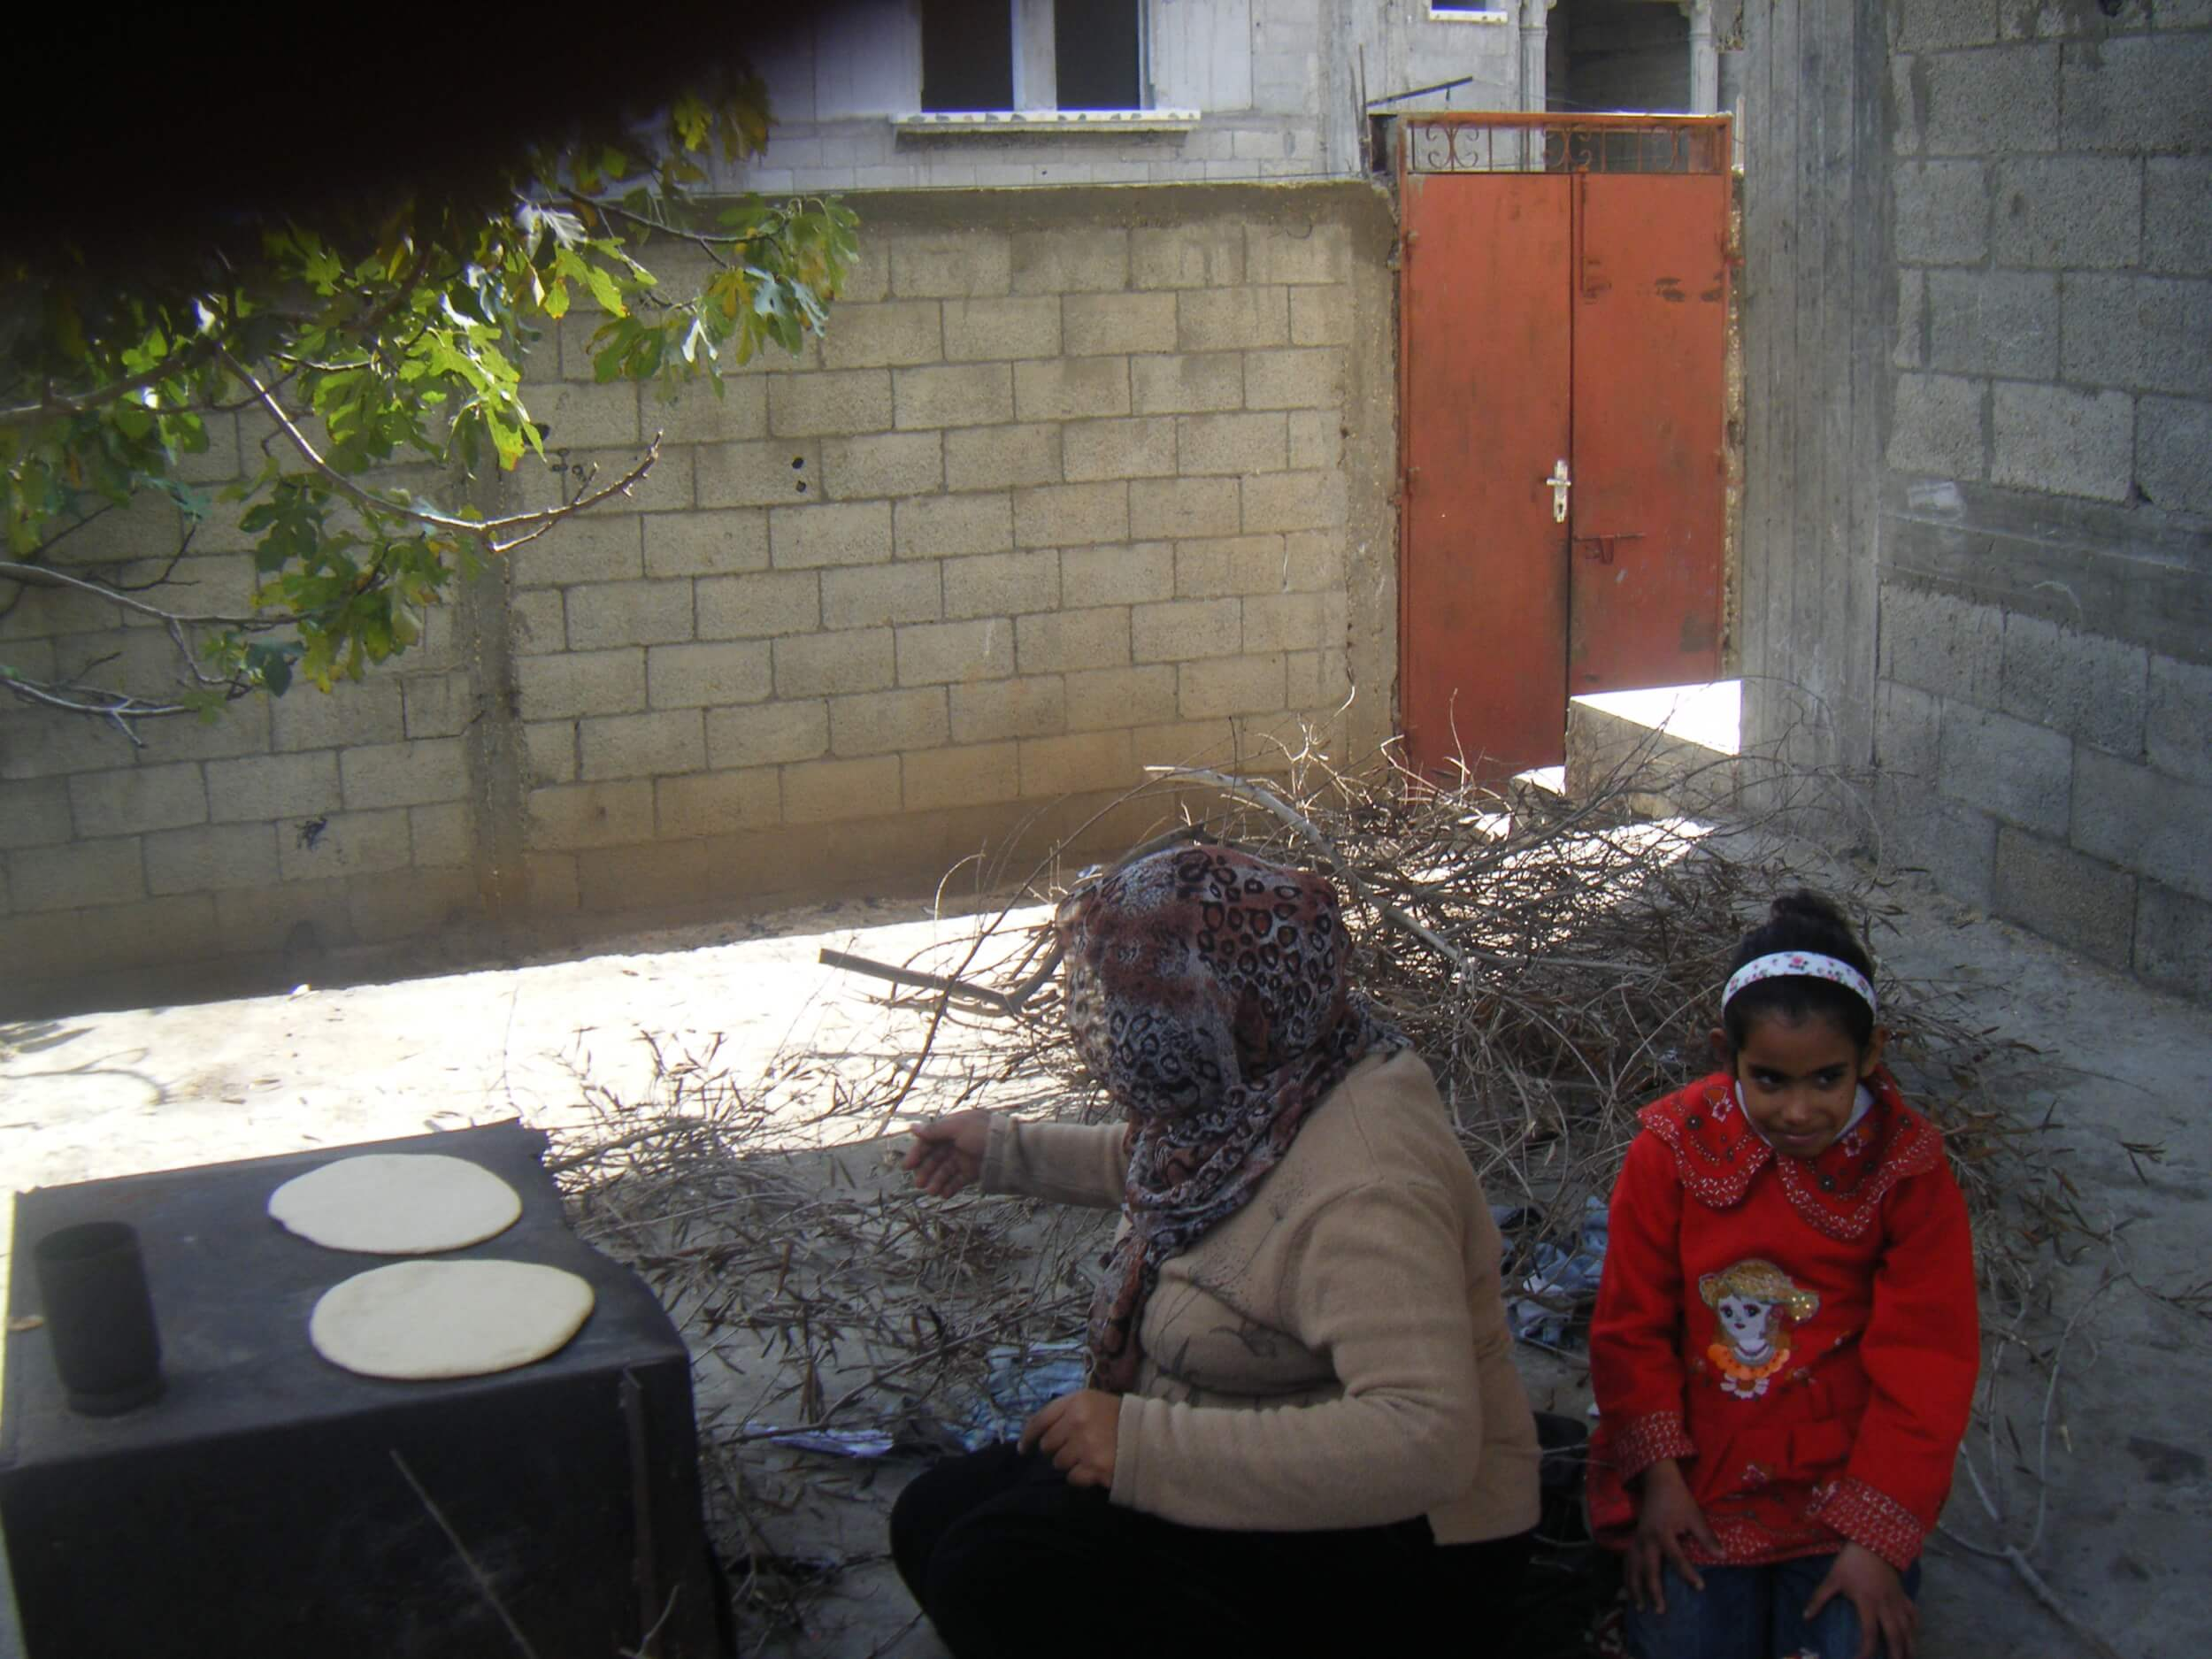 A woman in Gaza bakes using a traditional wood burning oven due to the electricity crisis. (Photo: Isra Saleh El-Namy)